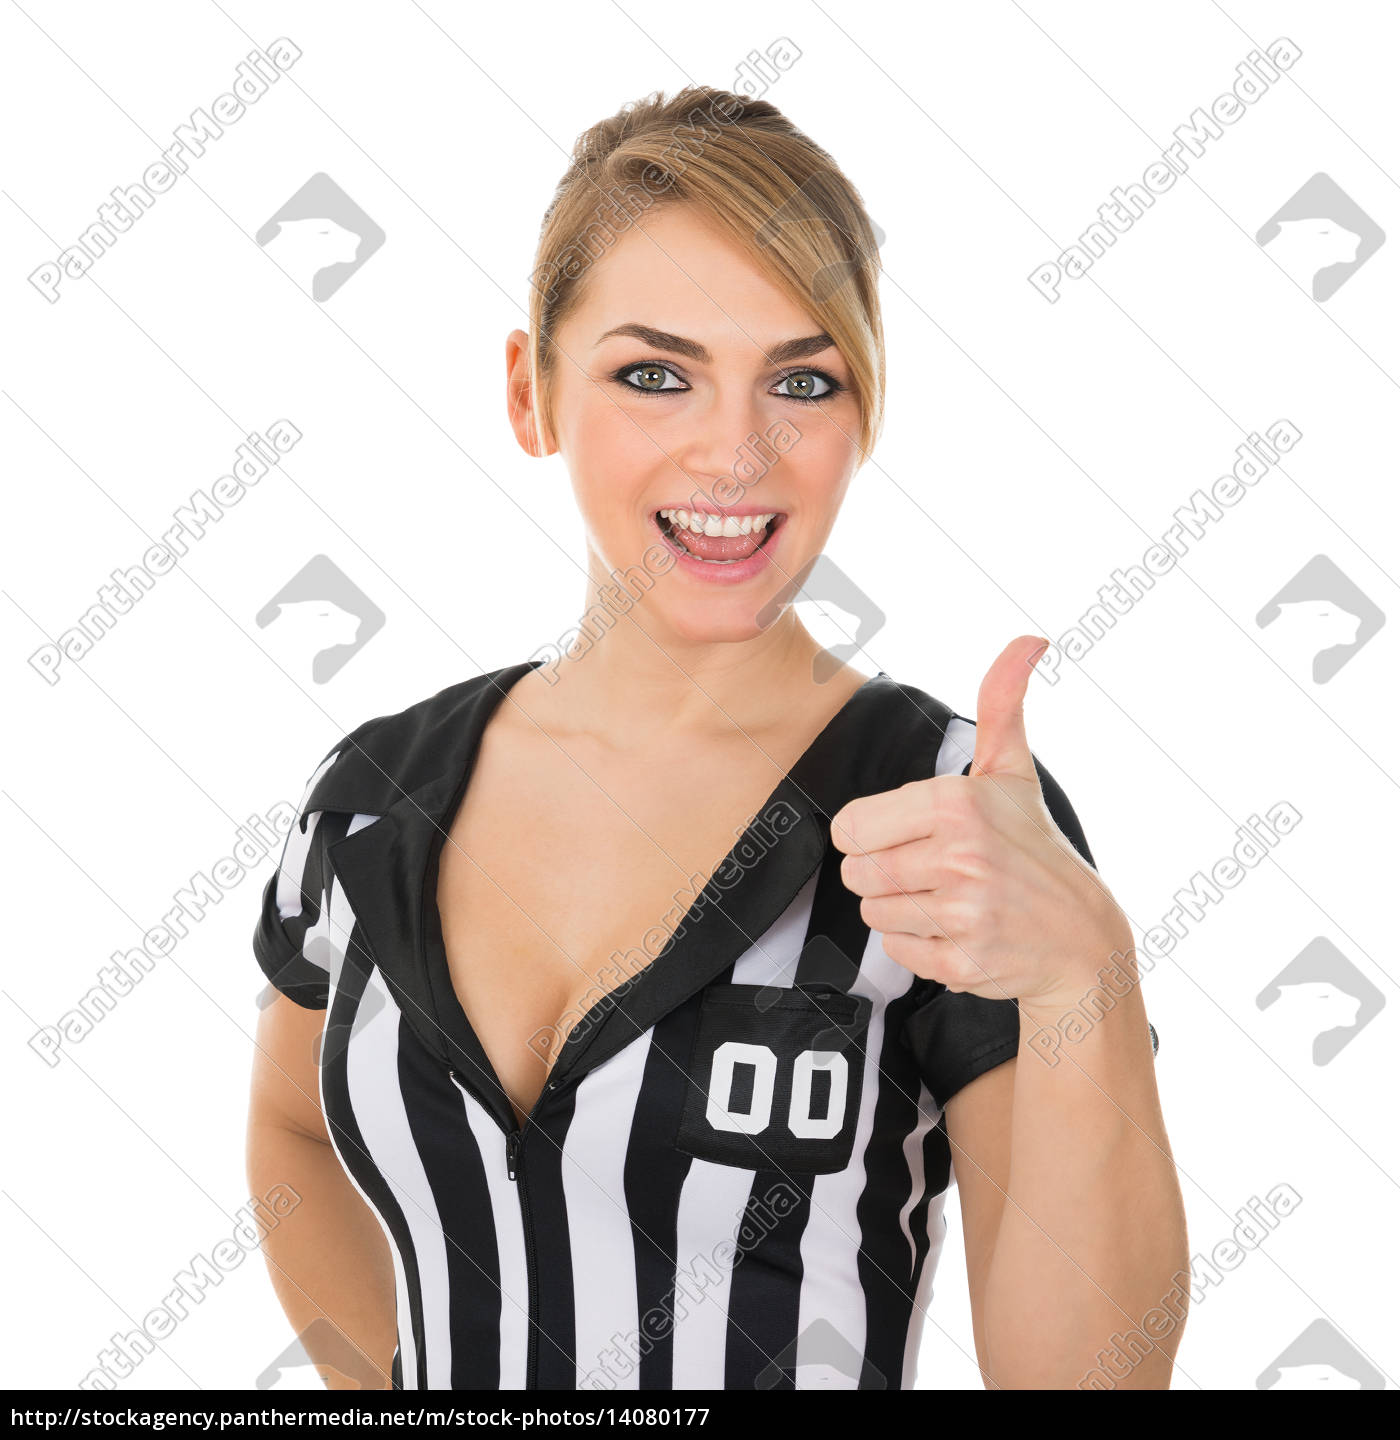 female, referee, with, thumbs, up, sign - 14080177